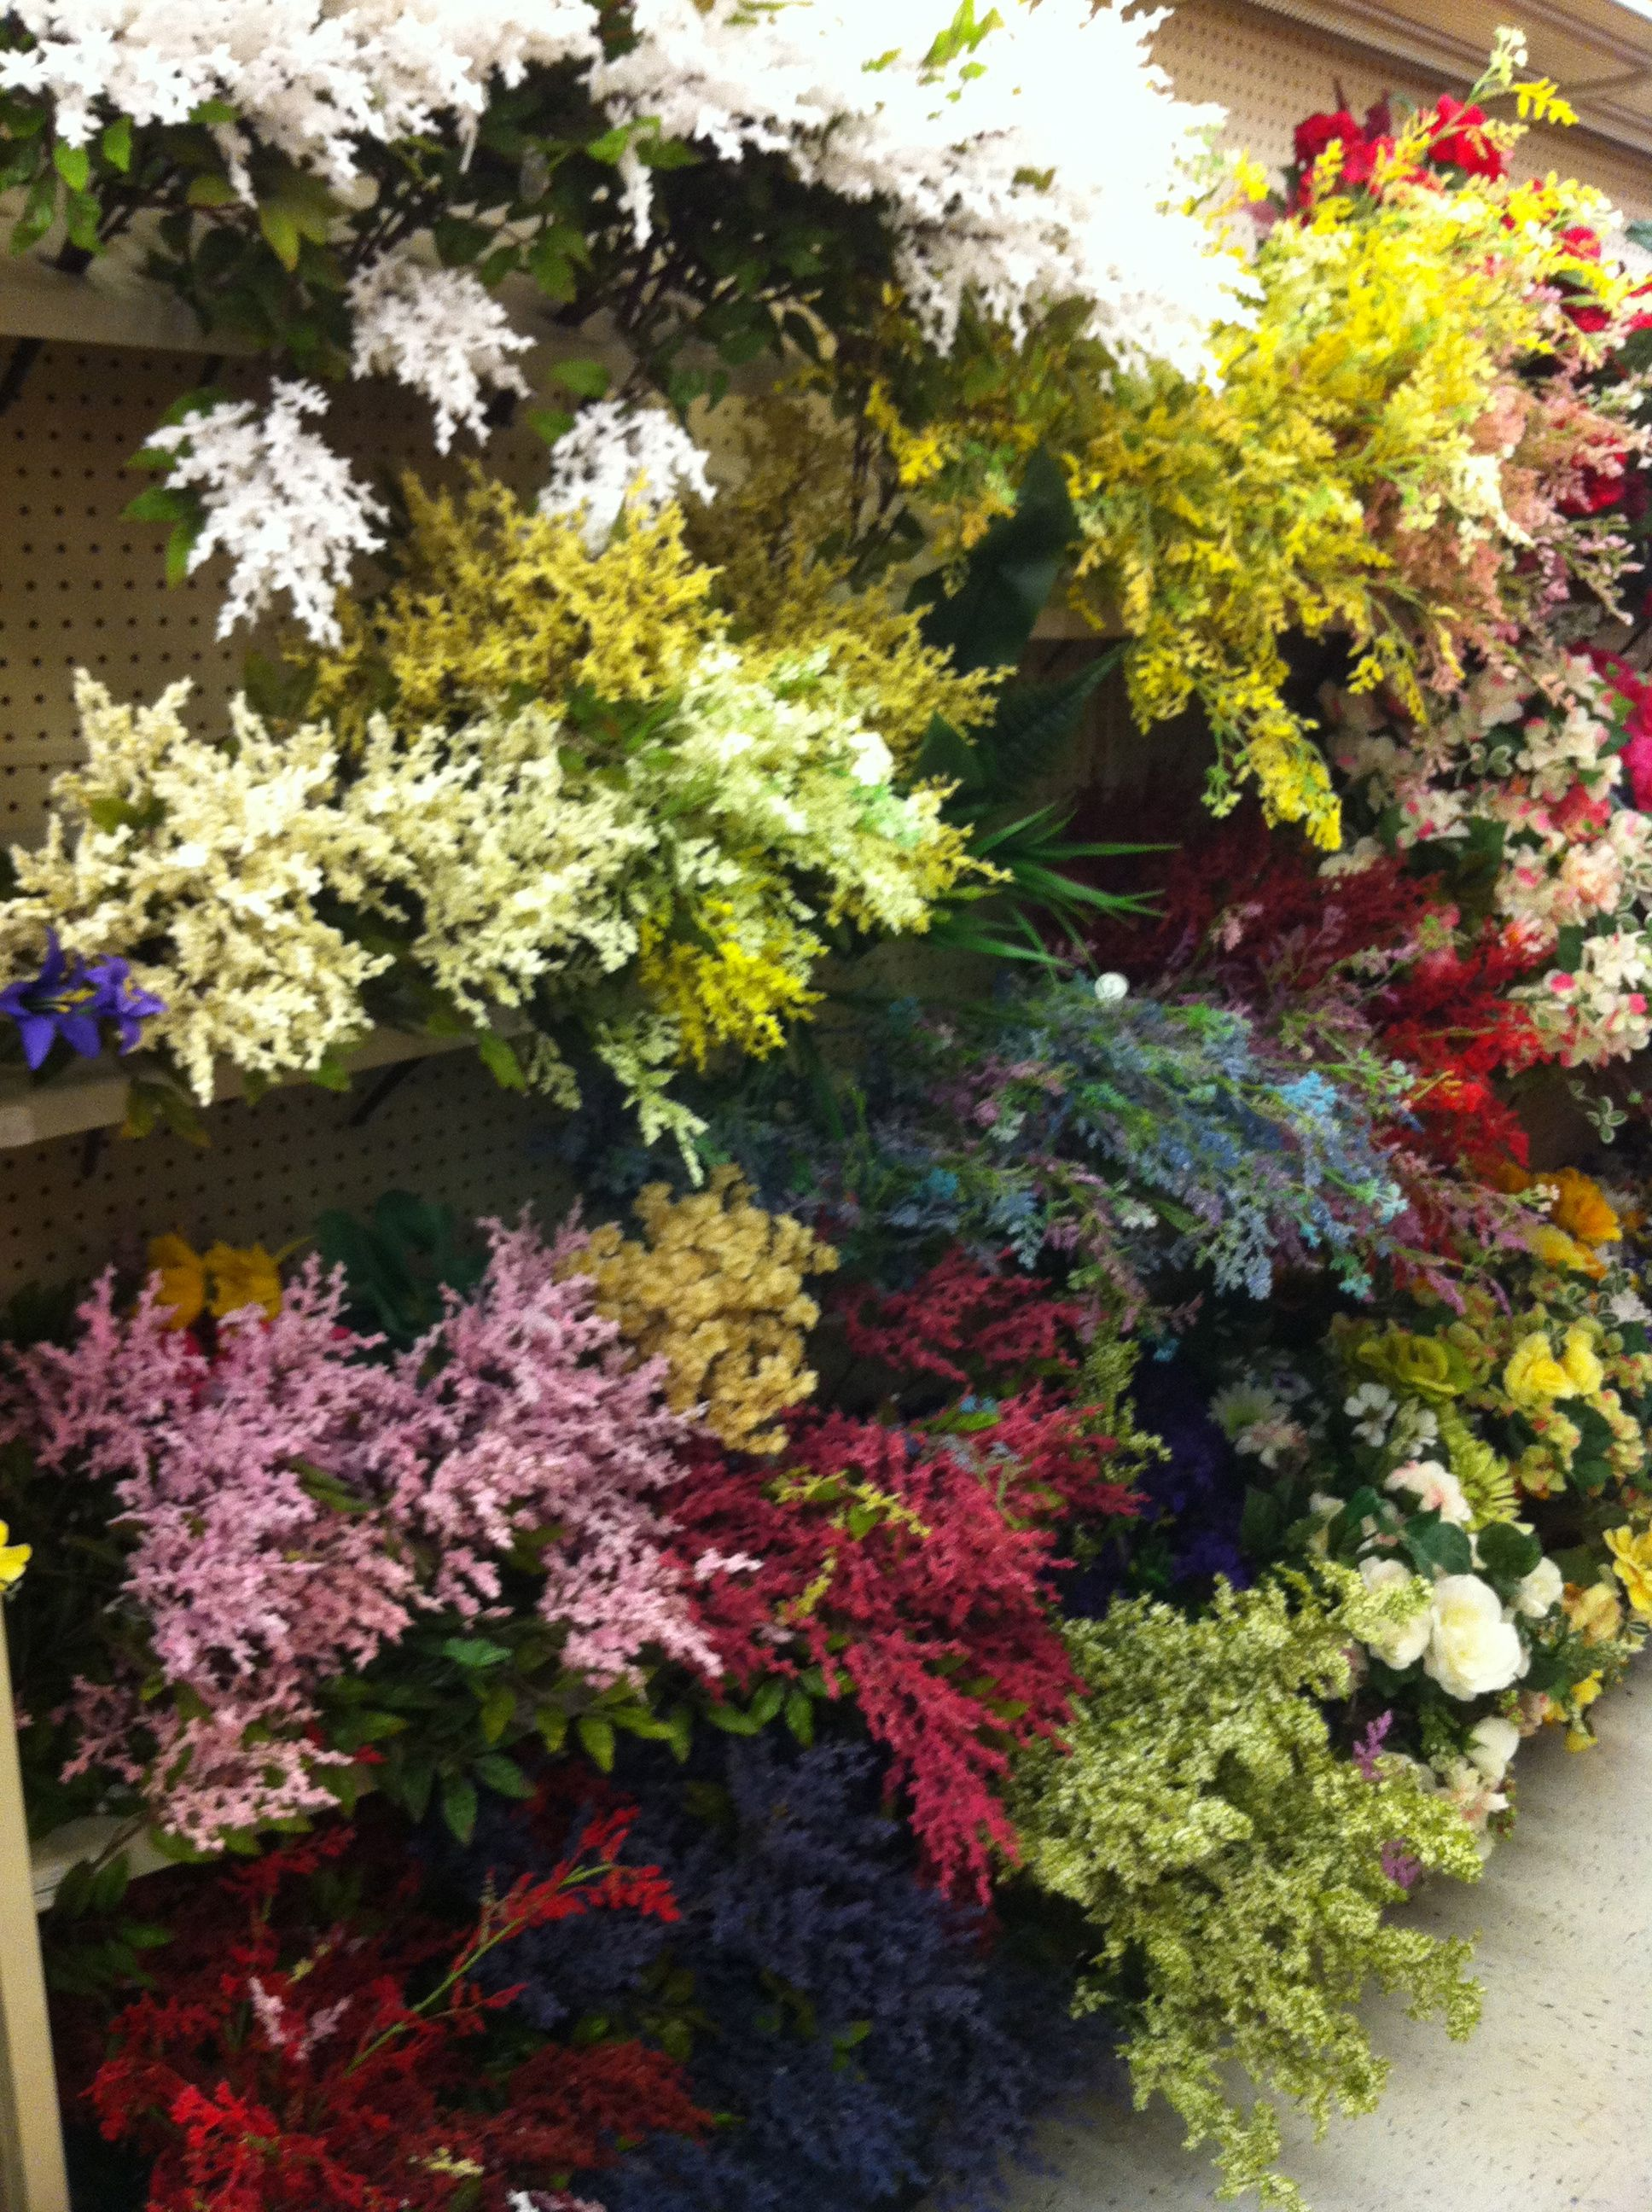 Hobby Lobby Artificial Plants And Flowers